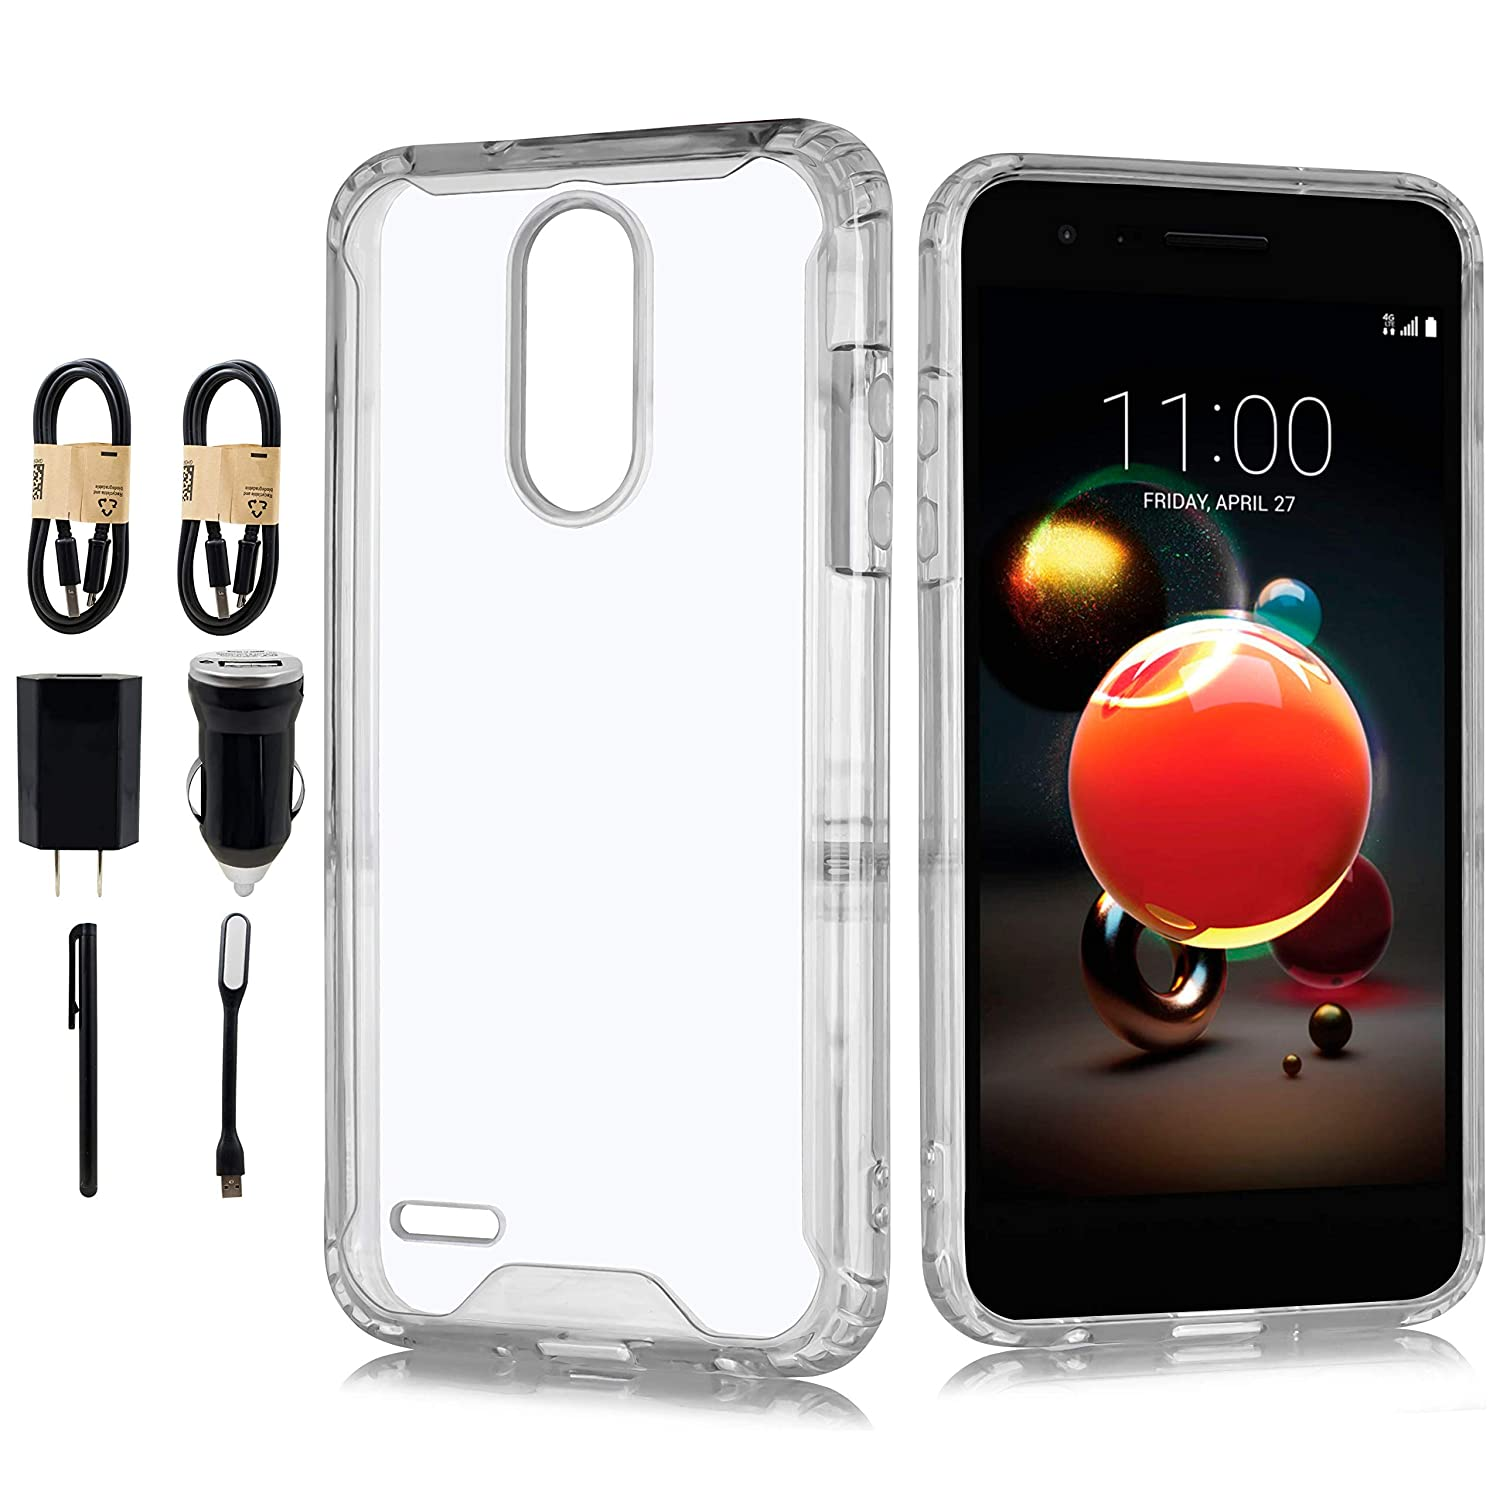 Case for LG Aristo 3 Phone/LG Tribute Empire/LG Aristo 2, Slim Heavy Duty Shockproof with Rugged Hard PC and TPU Bumper Protective Armor Phone Cover [Accessory Pack] (Clear)